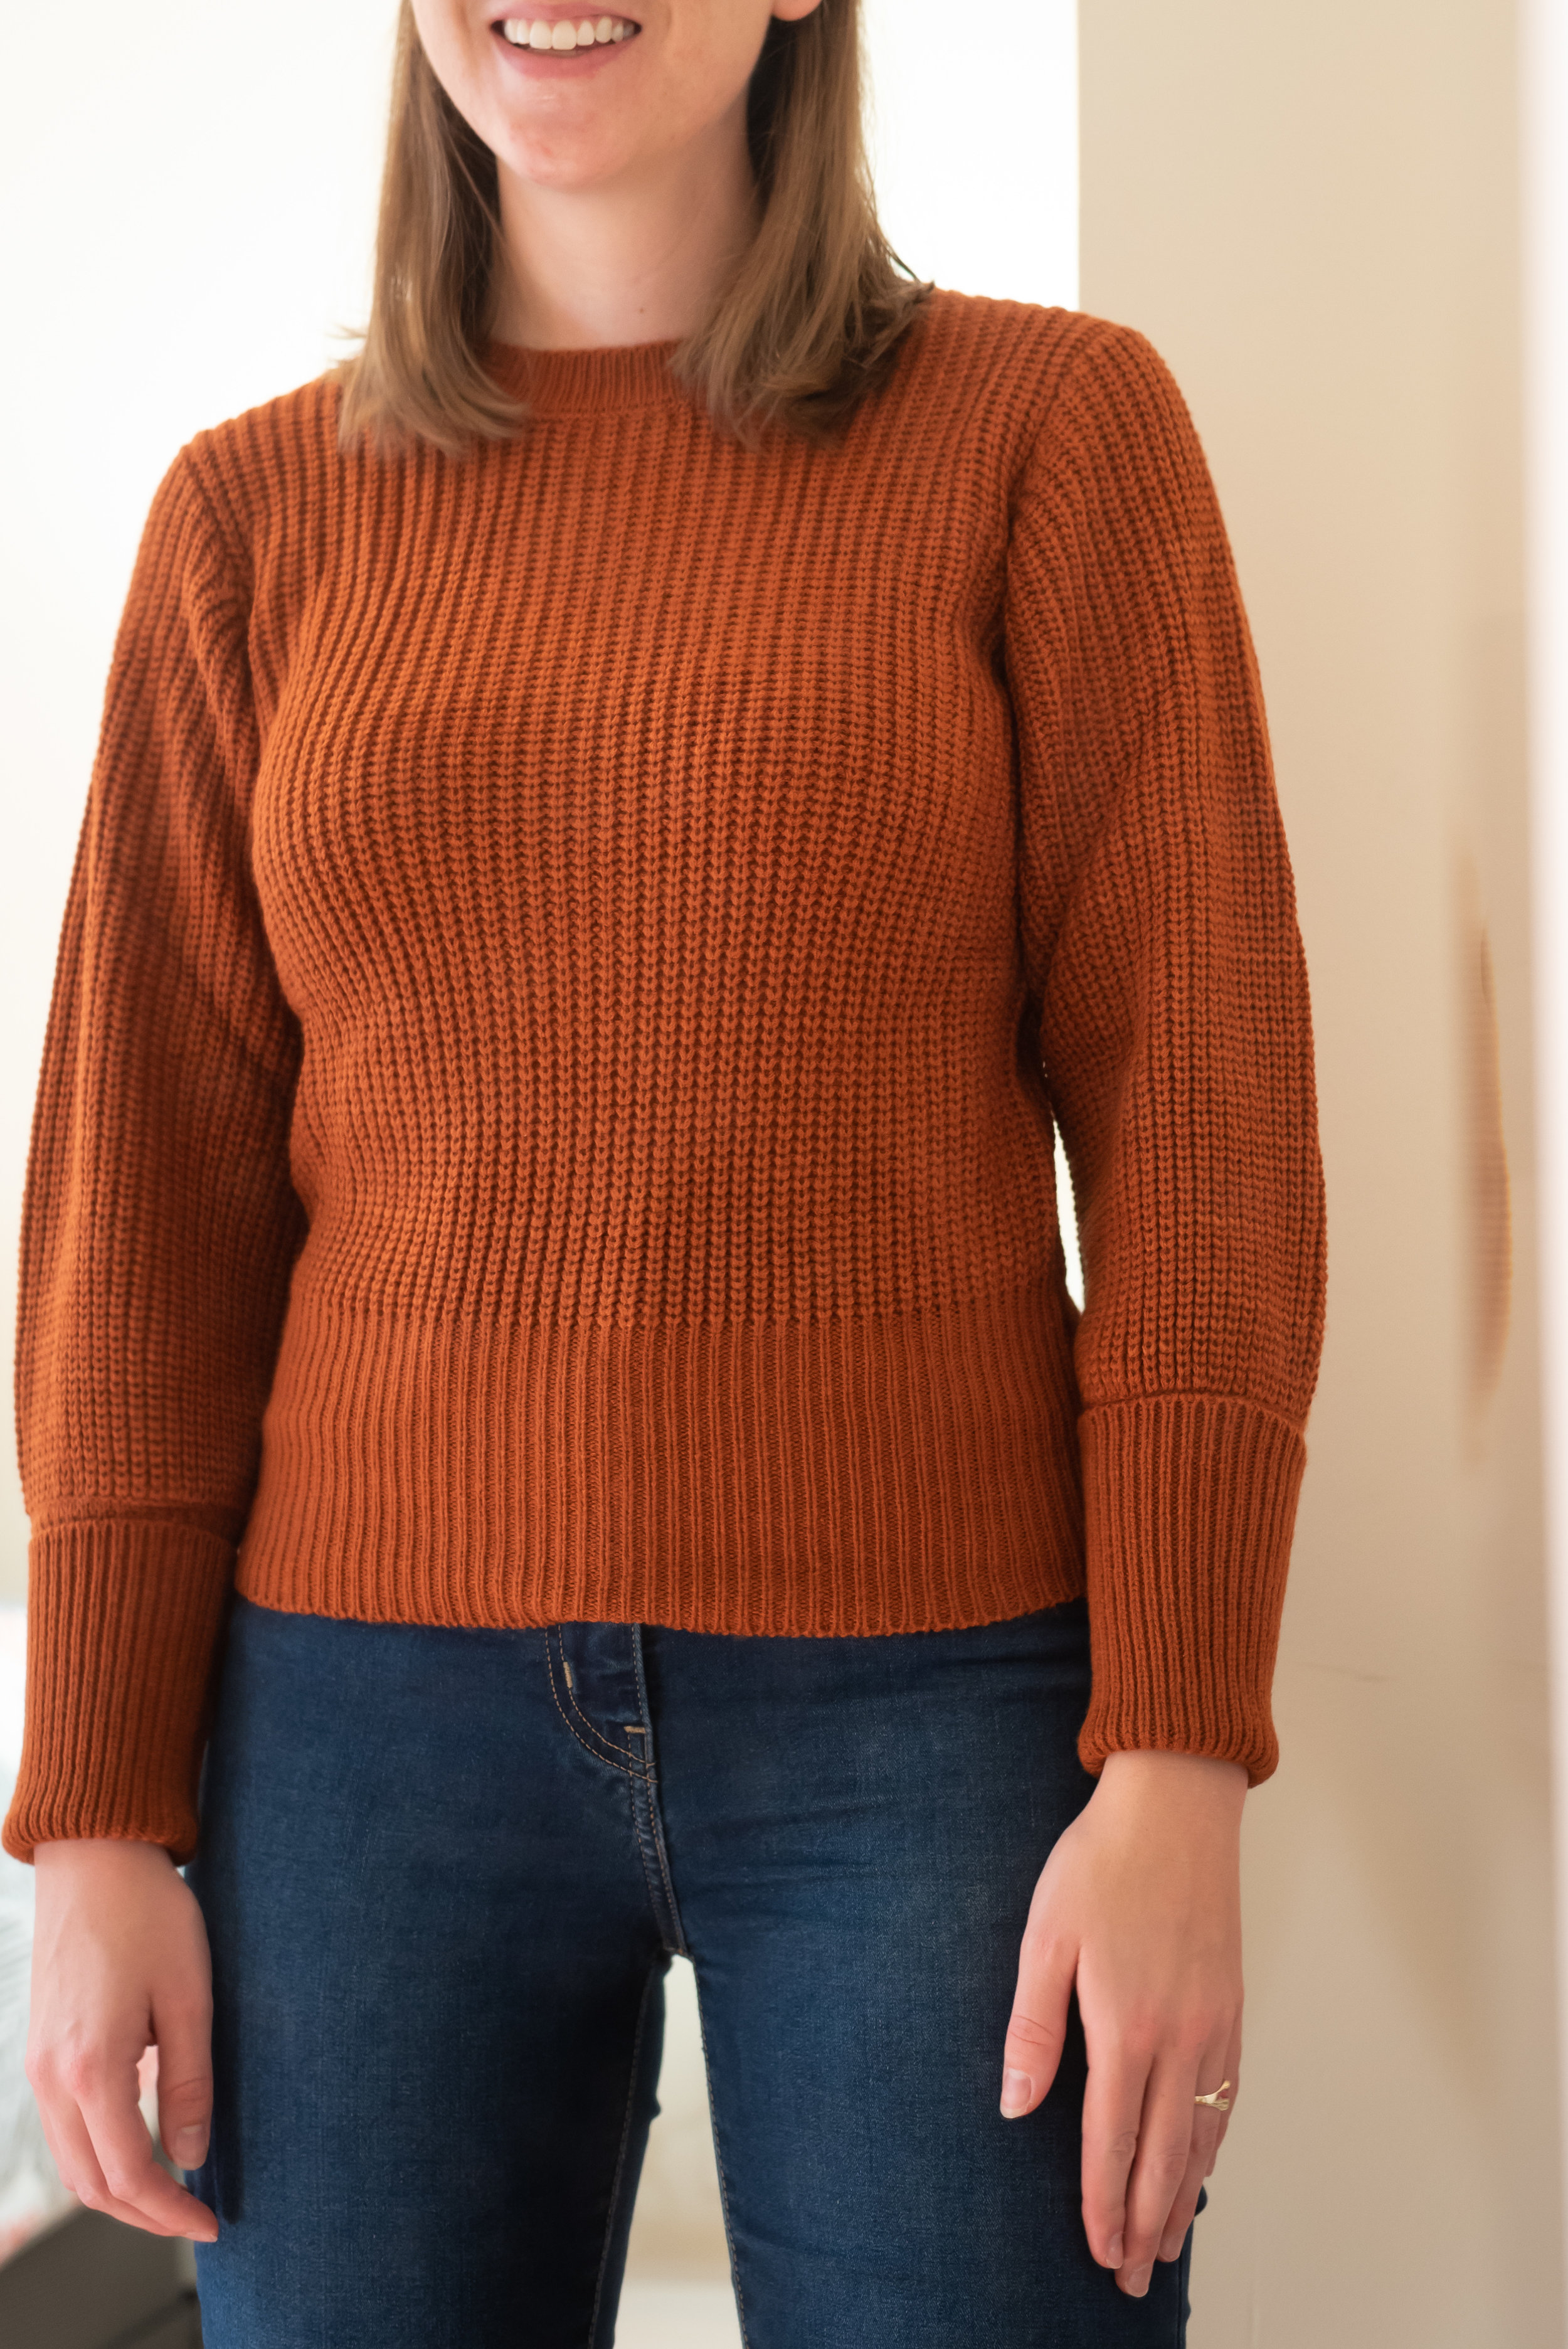 Fashion Union Petite Sweater With Fitted Rib - Size 6 Petite - FRONT